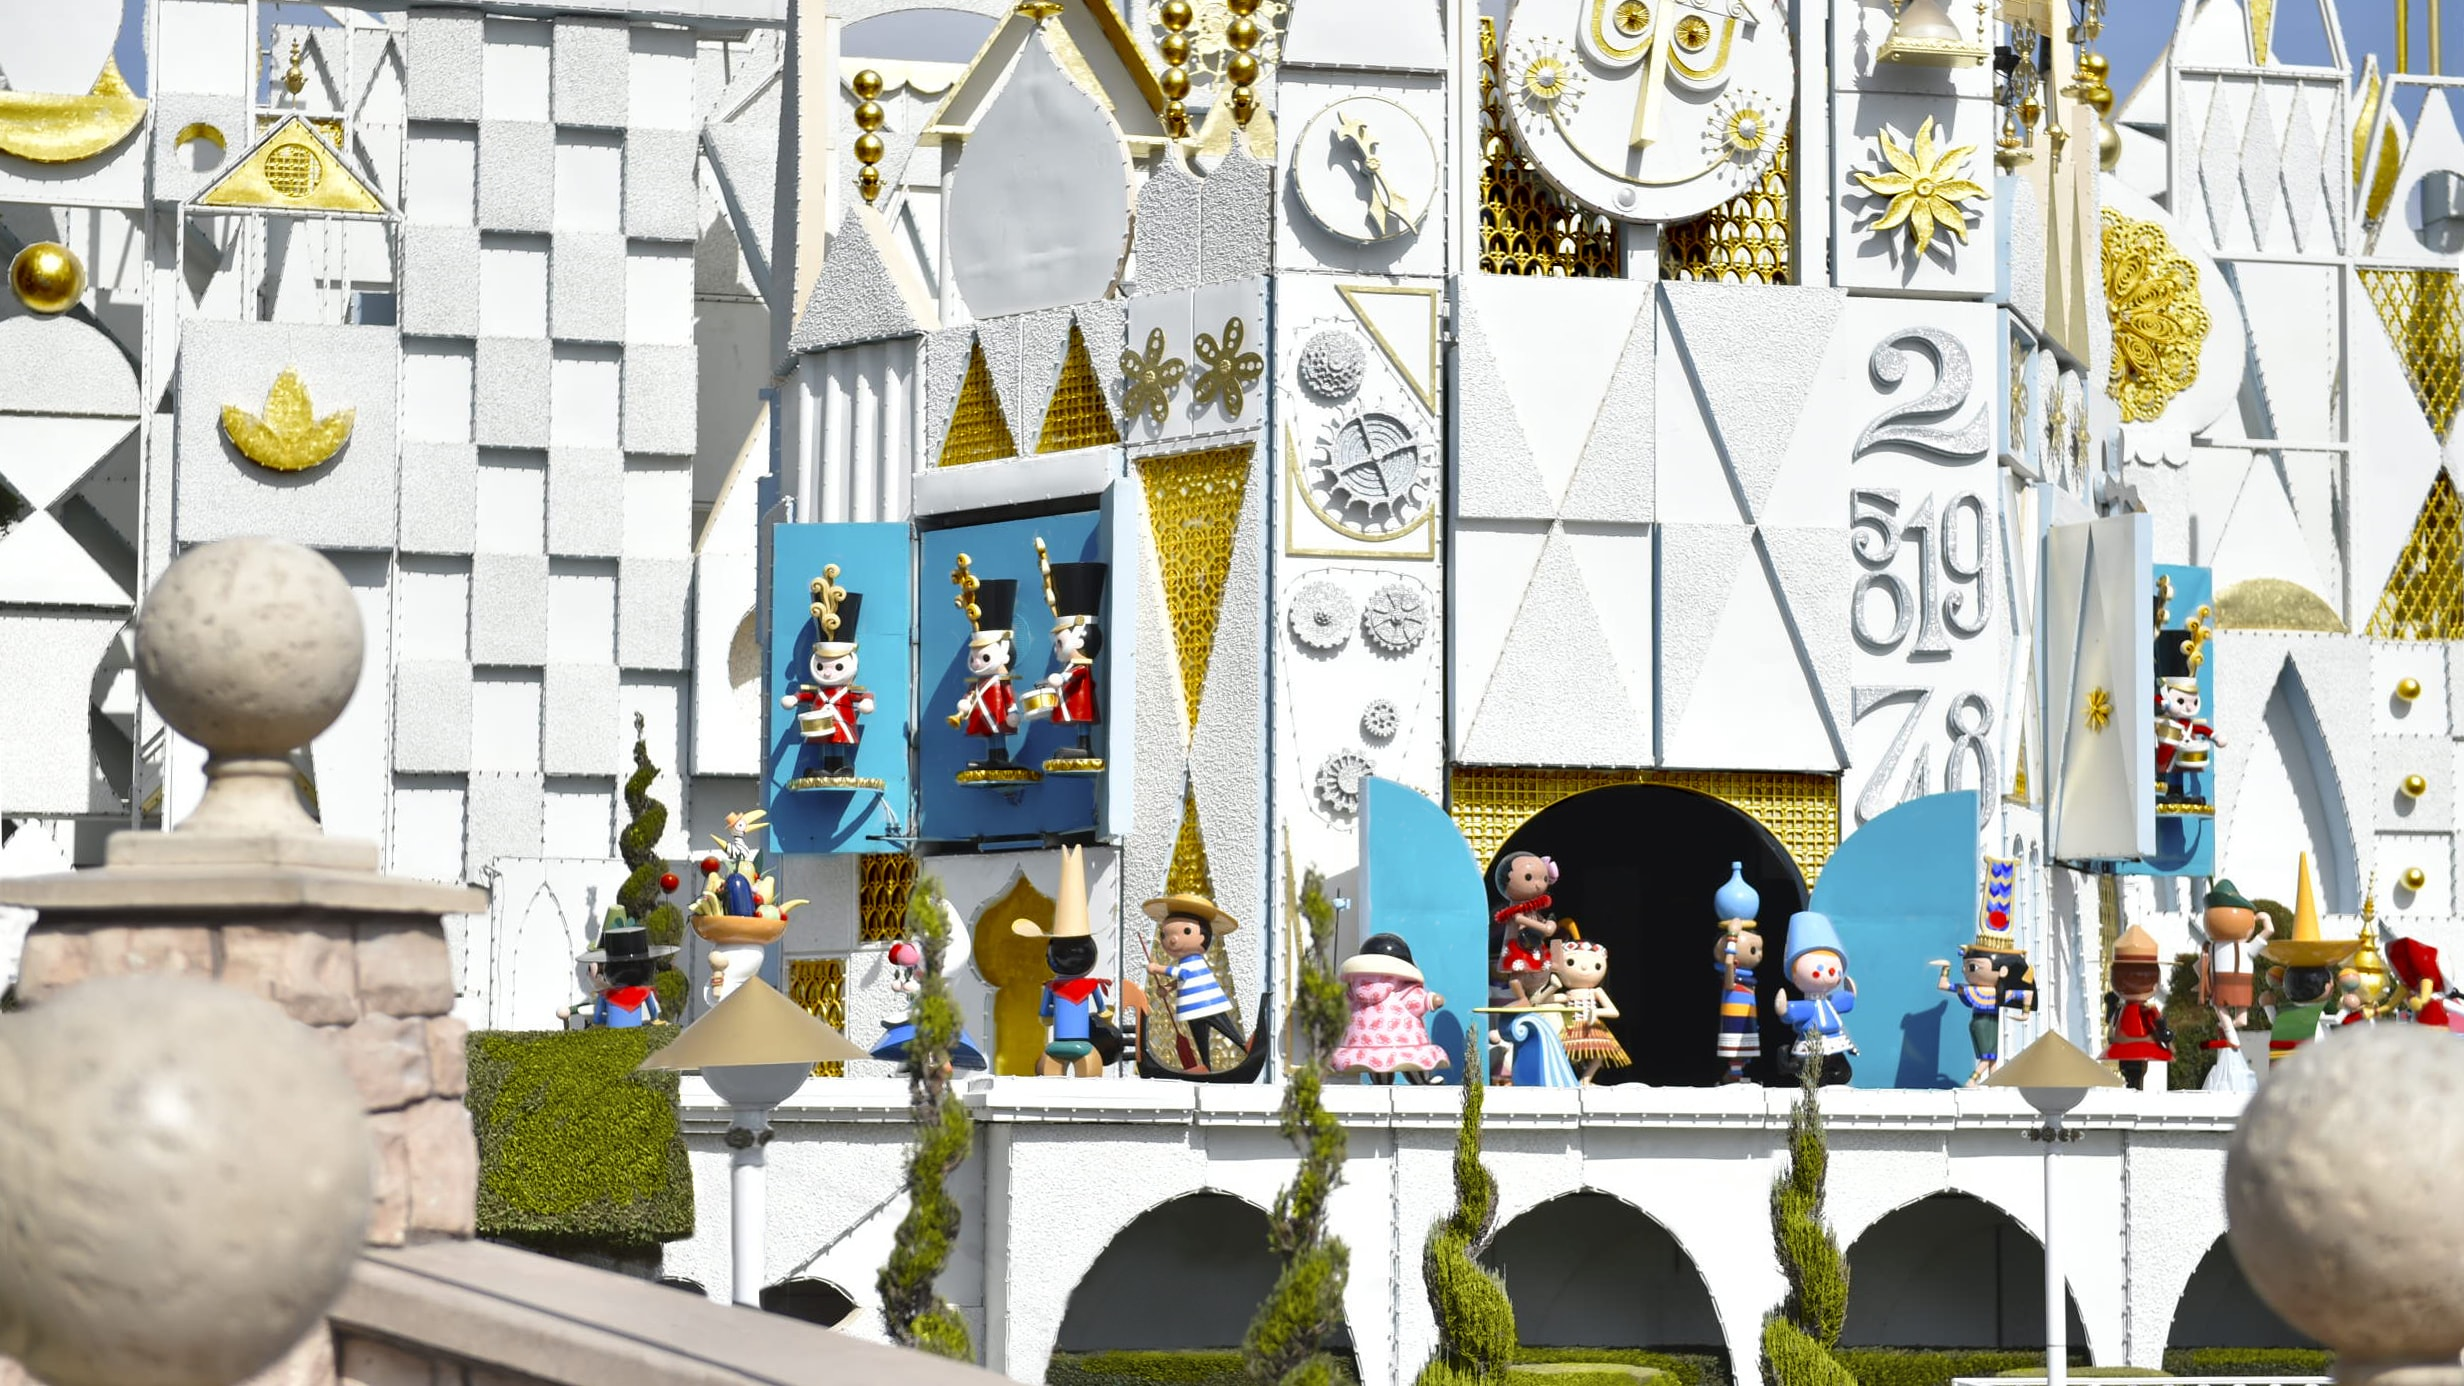 """Image of the exterior castle and clock tower at the """"it's a small world"""" ride."""